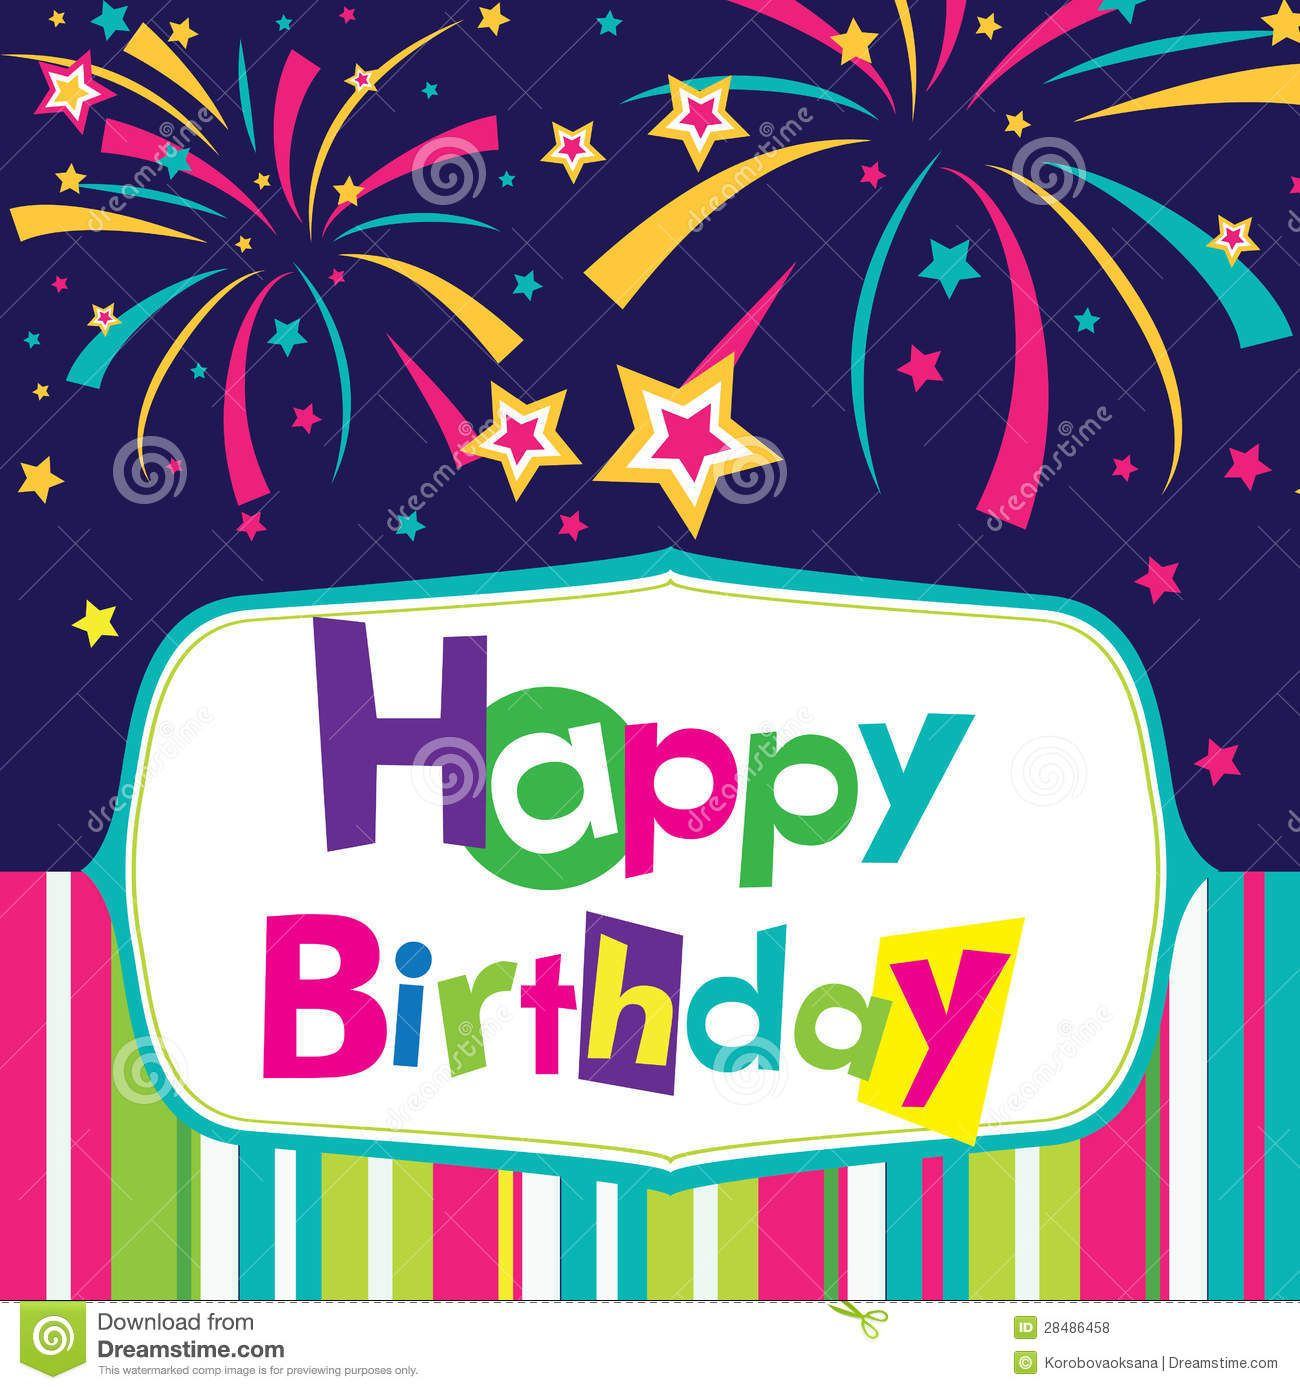 8 Best Picture Happy Birthday Card Vector In 2021 Free Happy Birthday Cards Happy Birthday Free Happy Birthday Cards Online